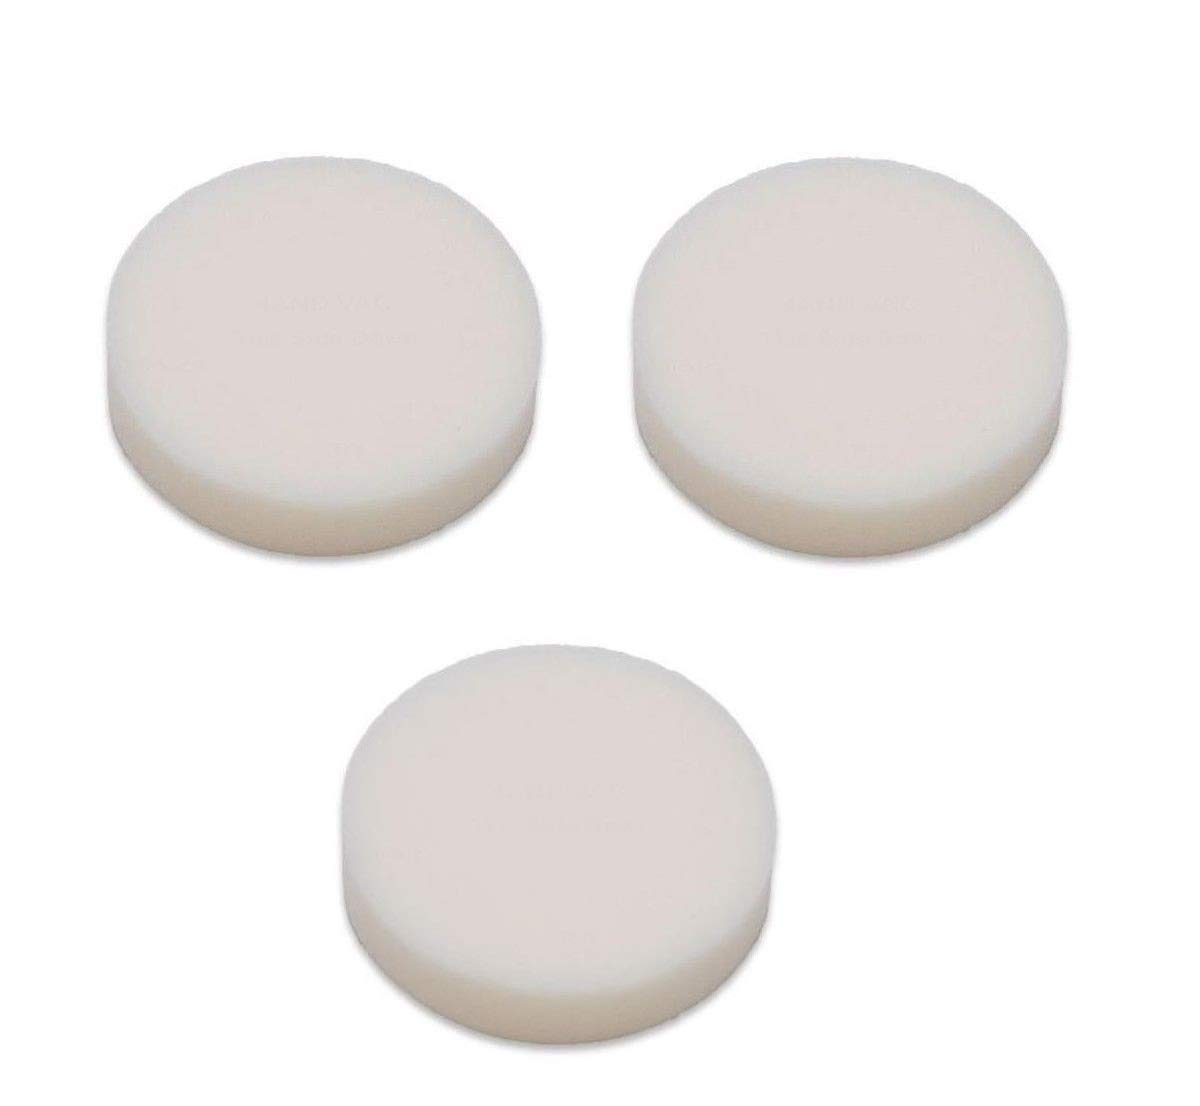 3 Replacement HOOVER Filters for Platinum Stick and Hand Vac Linx